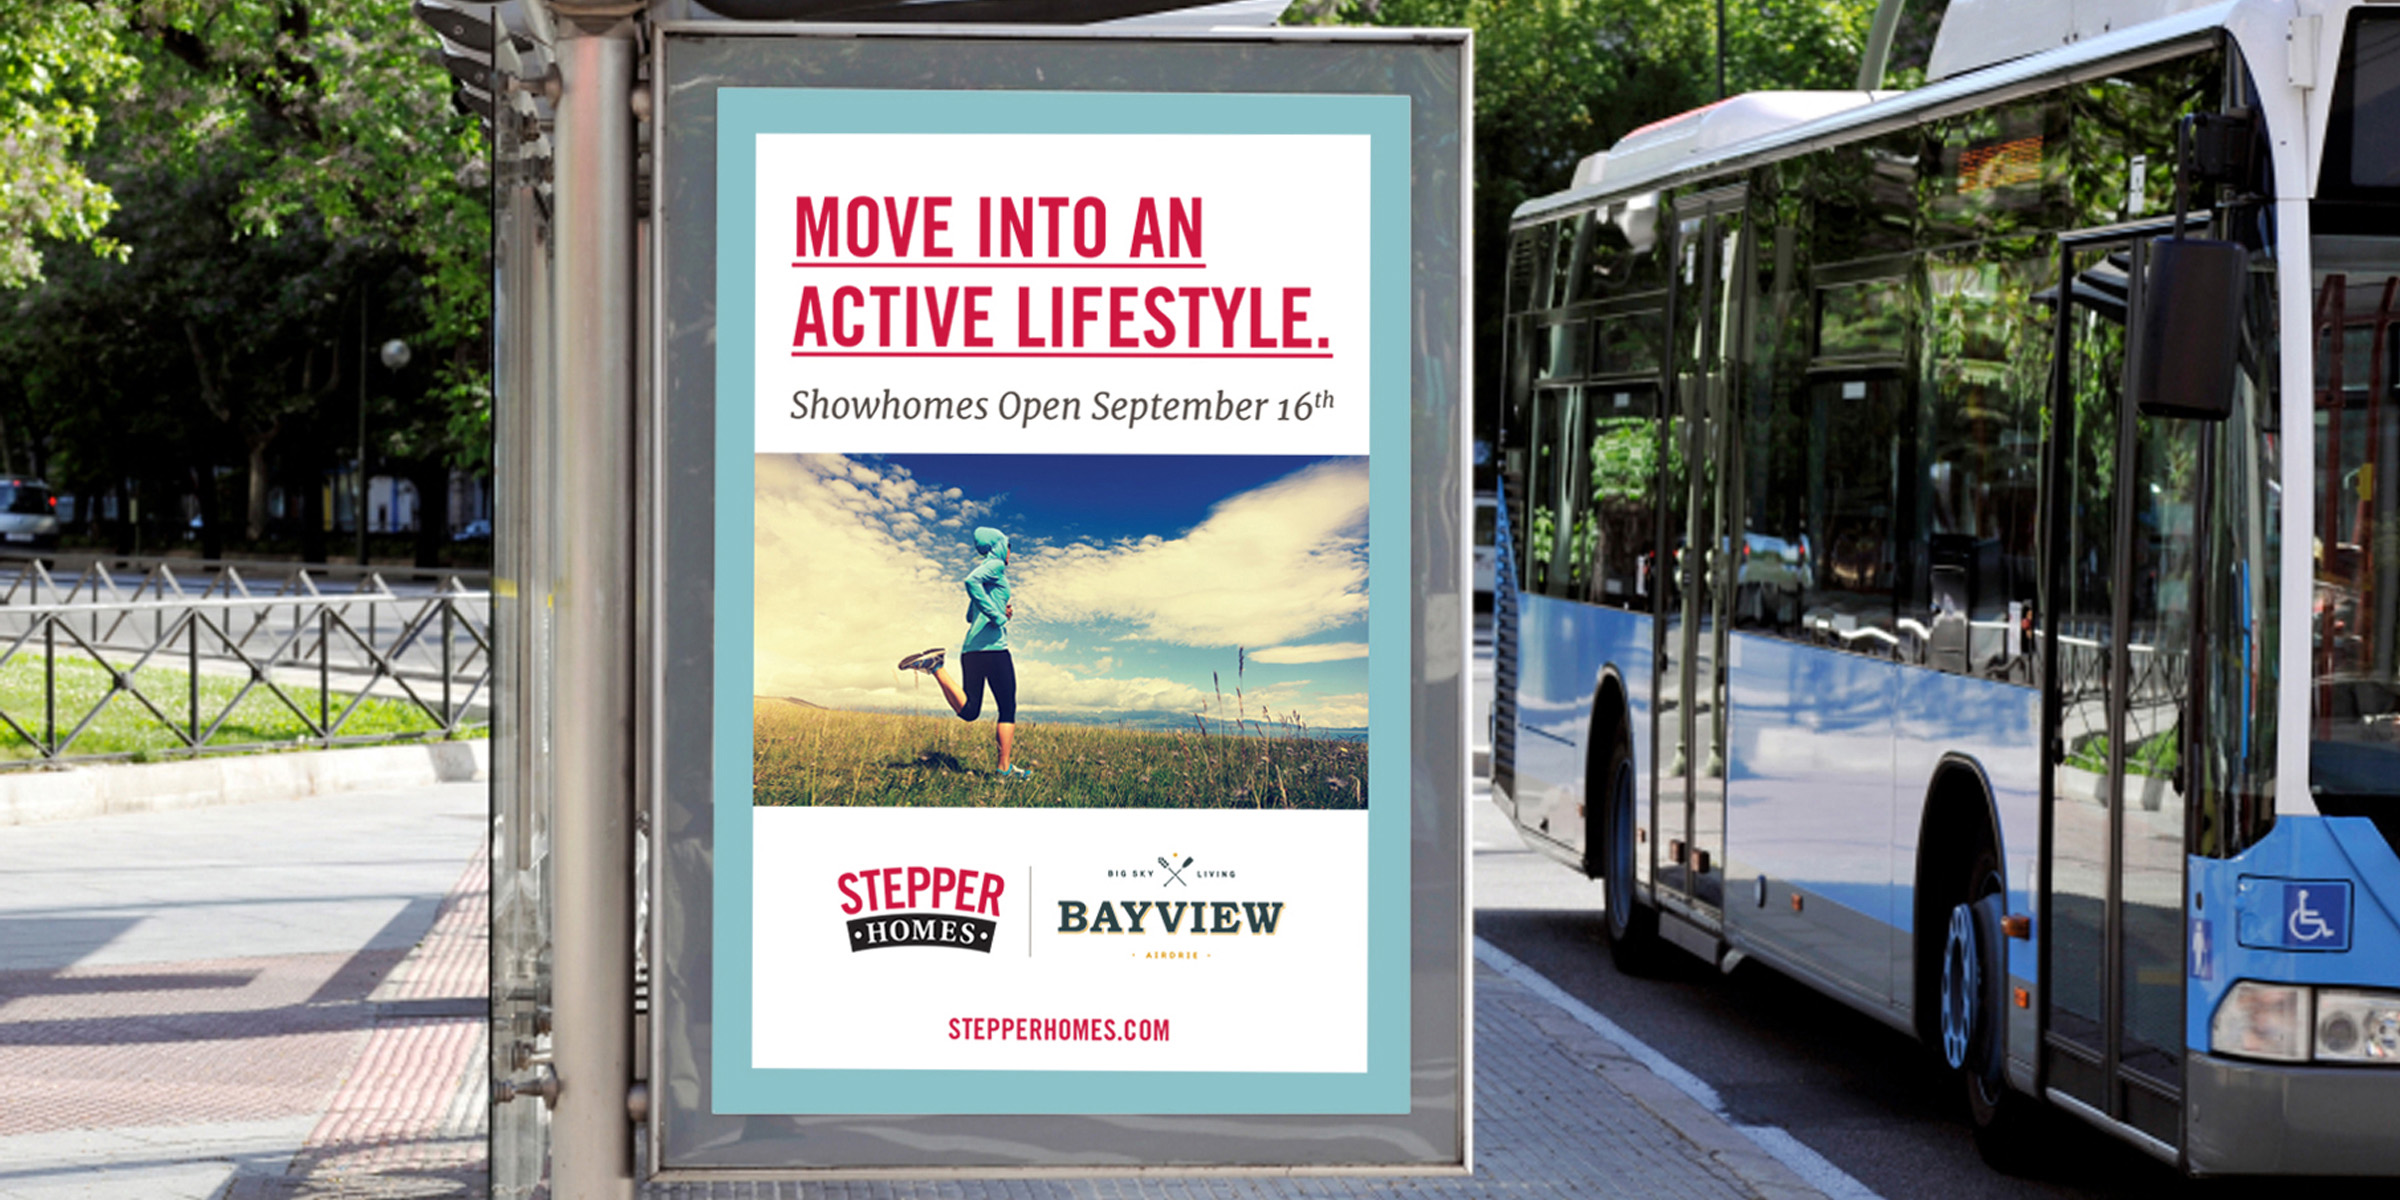 Stepper homes bus shelter ad